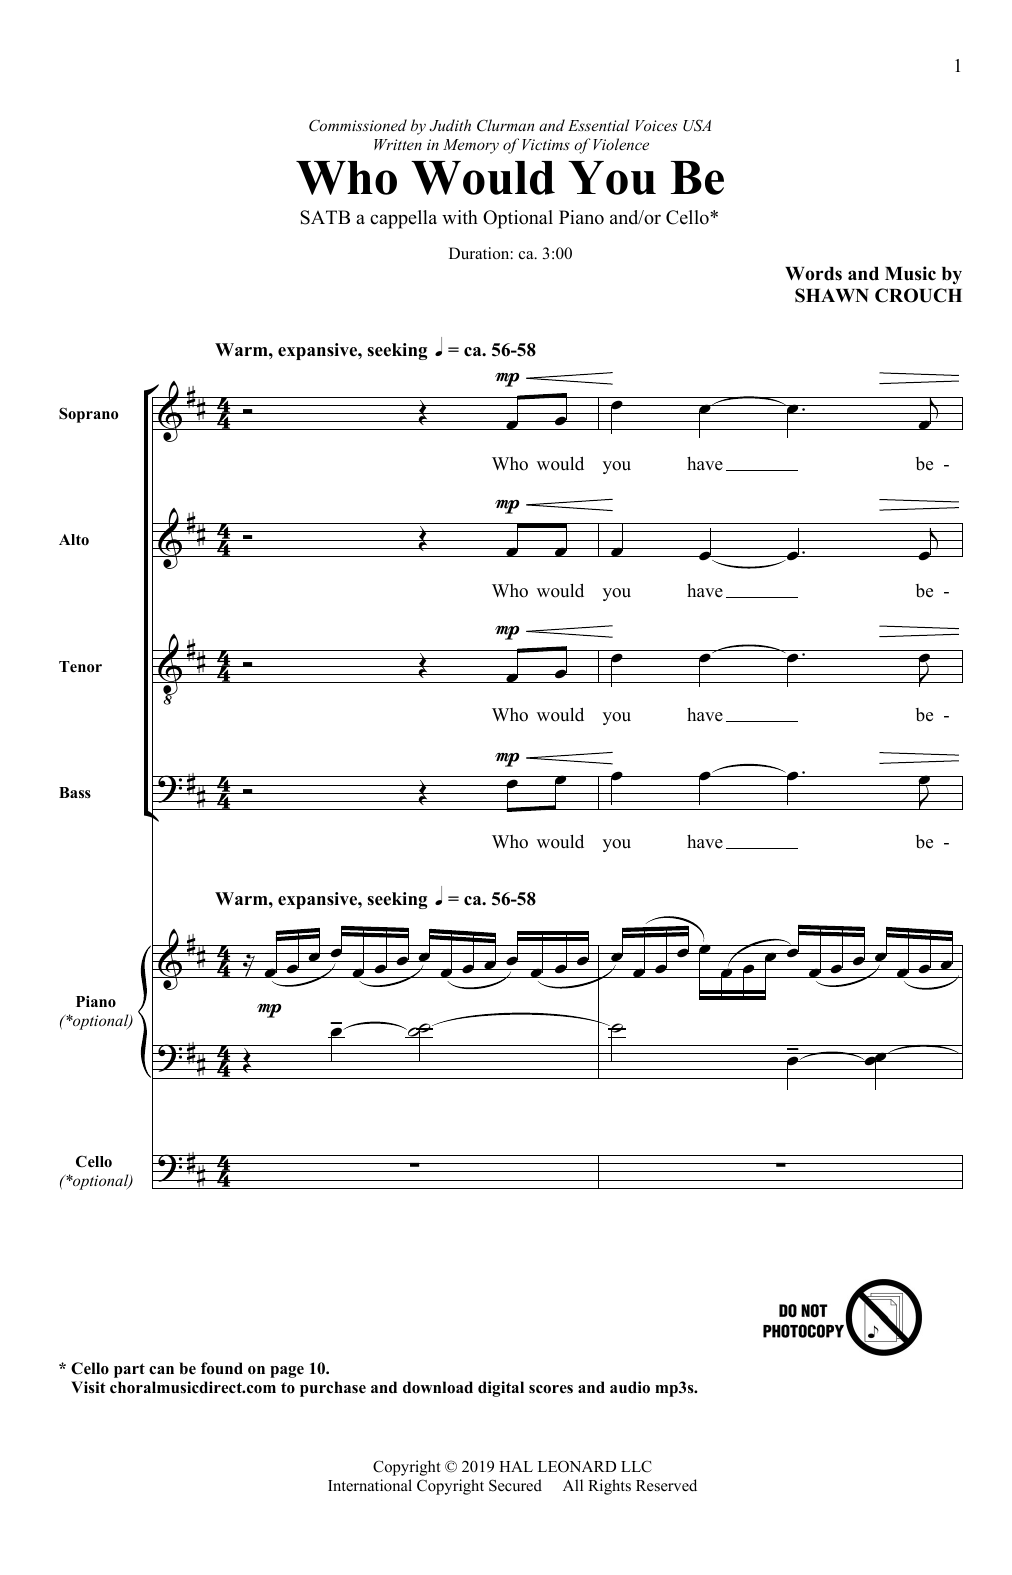 Who Would You Be? (SATB Choir)